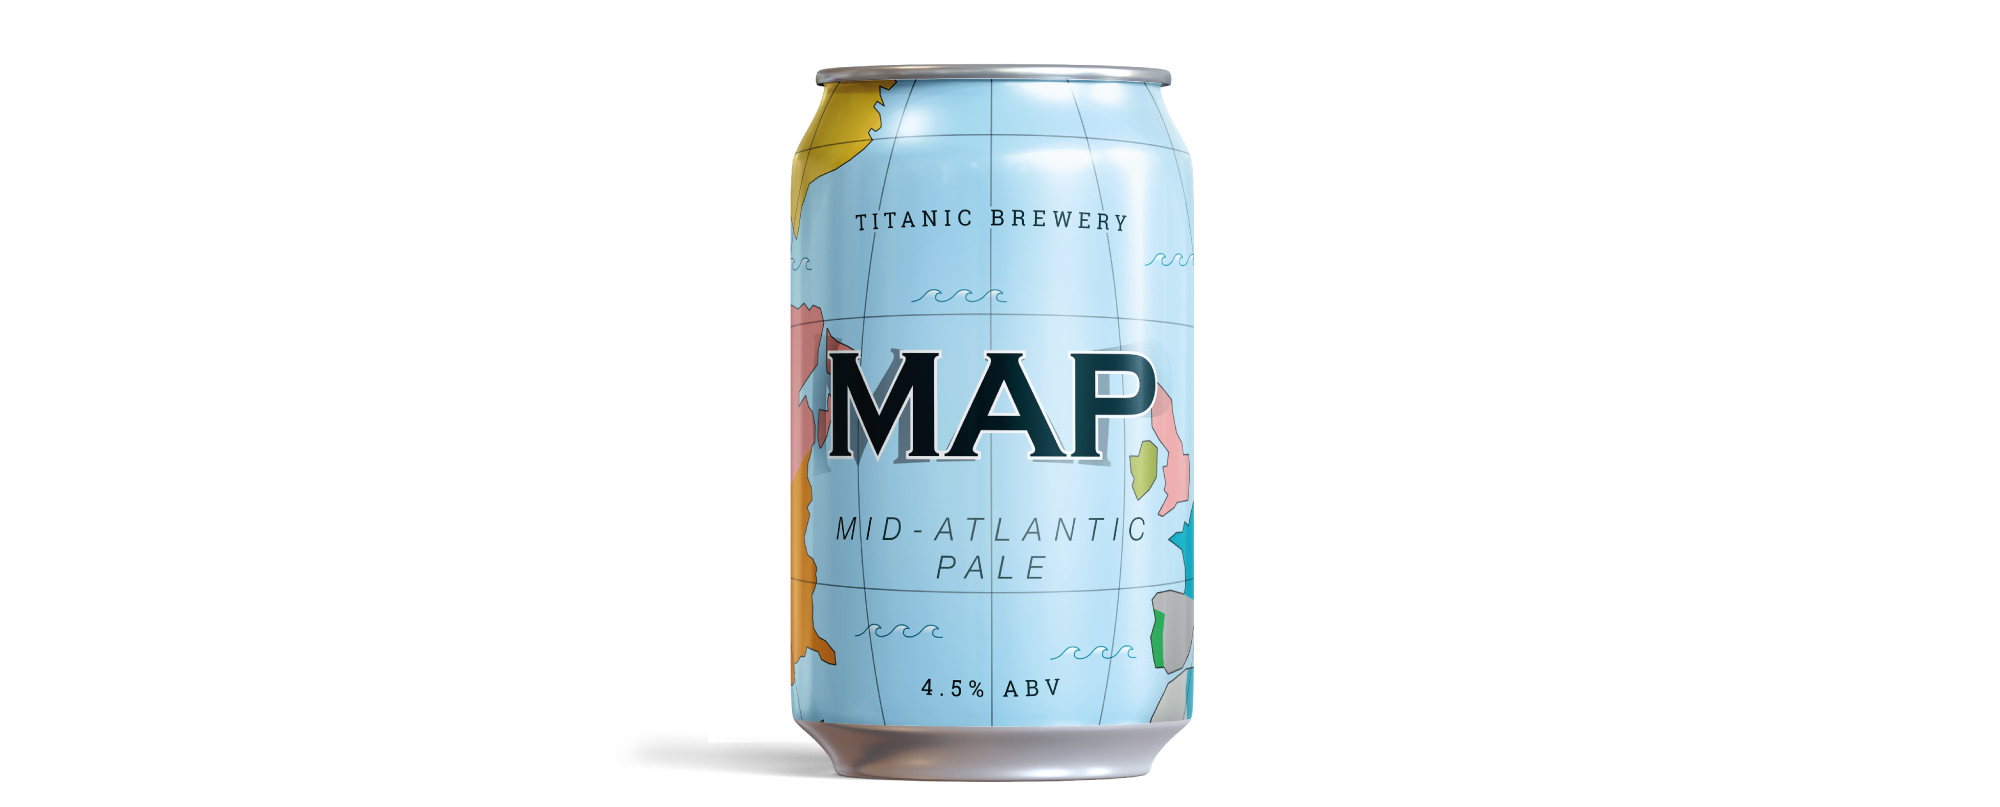 Titanic Brewery MAP - Mid Atlantic Pale design by AD Profile